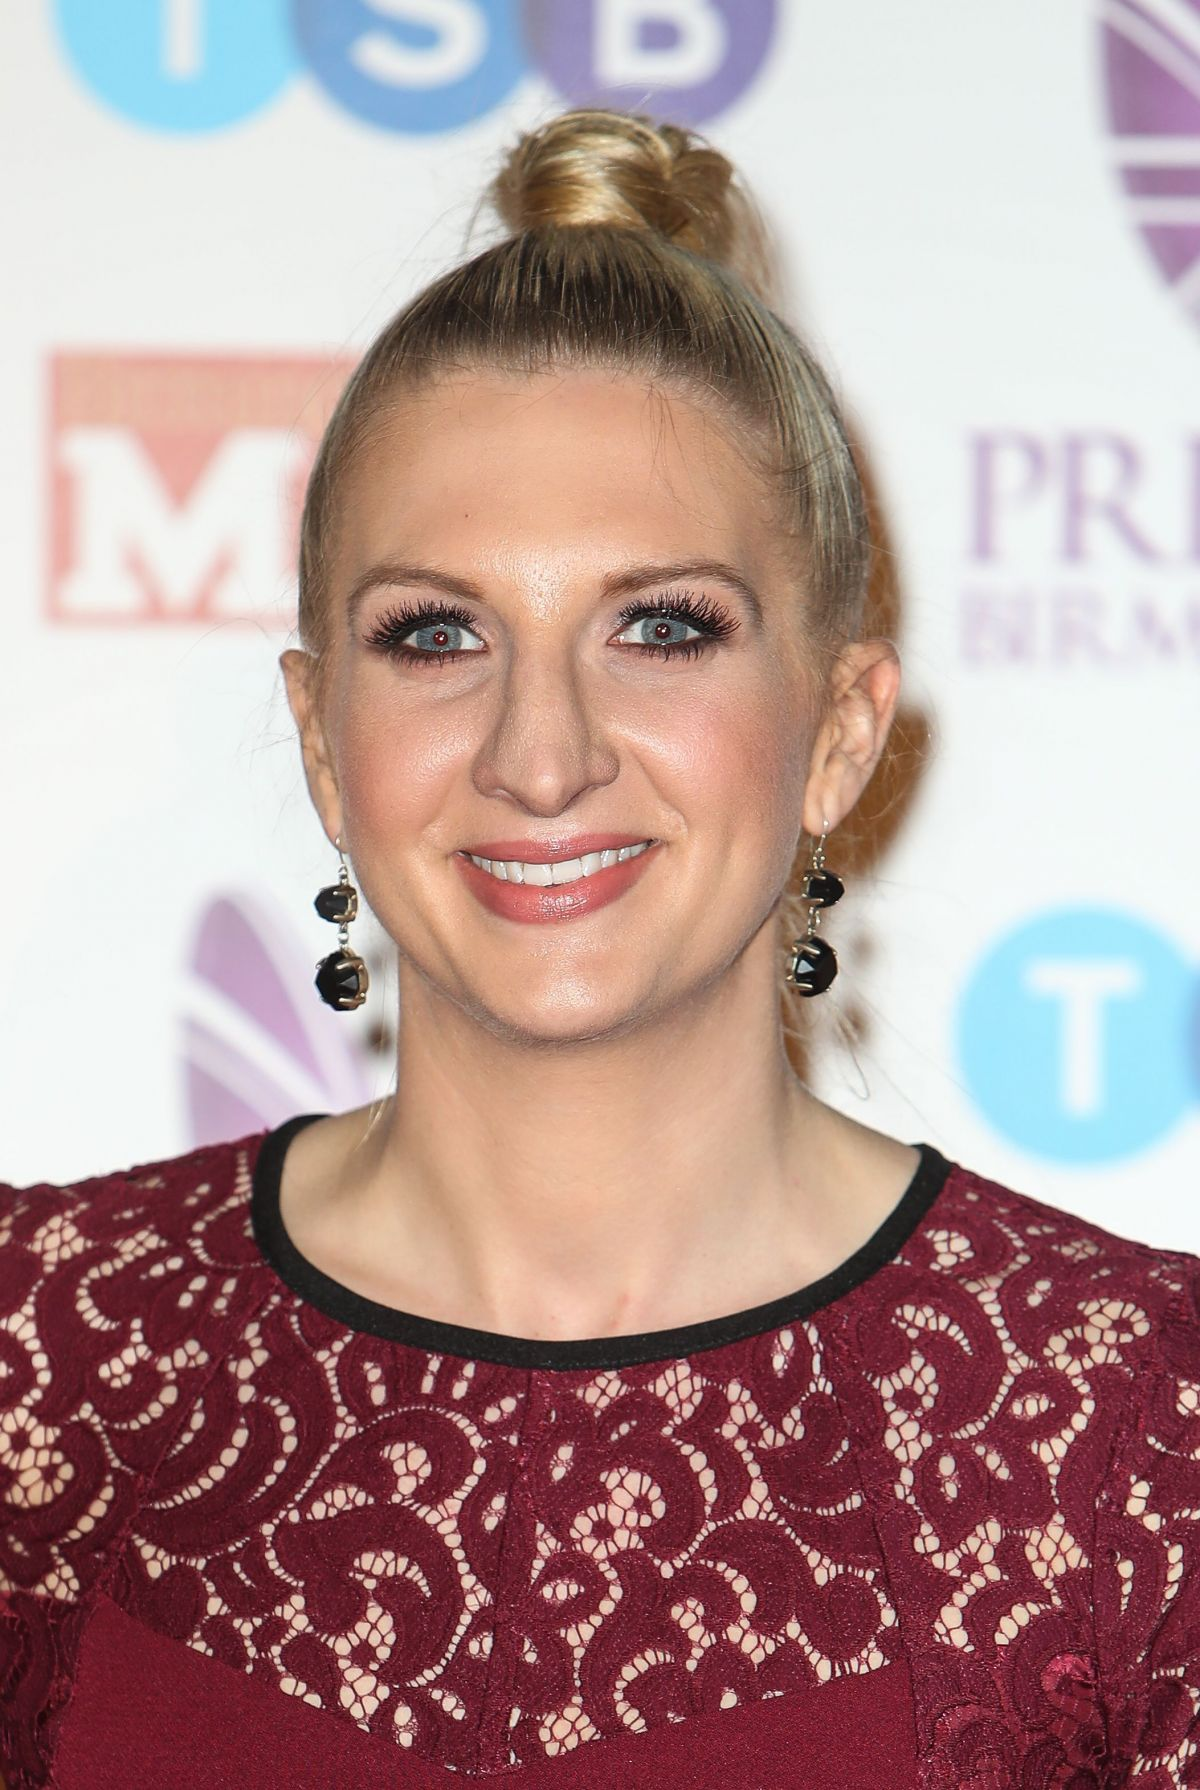 rebecca adlington - photo #2